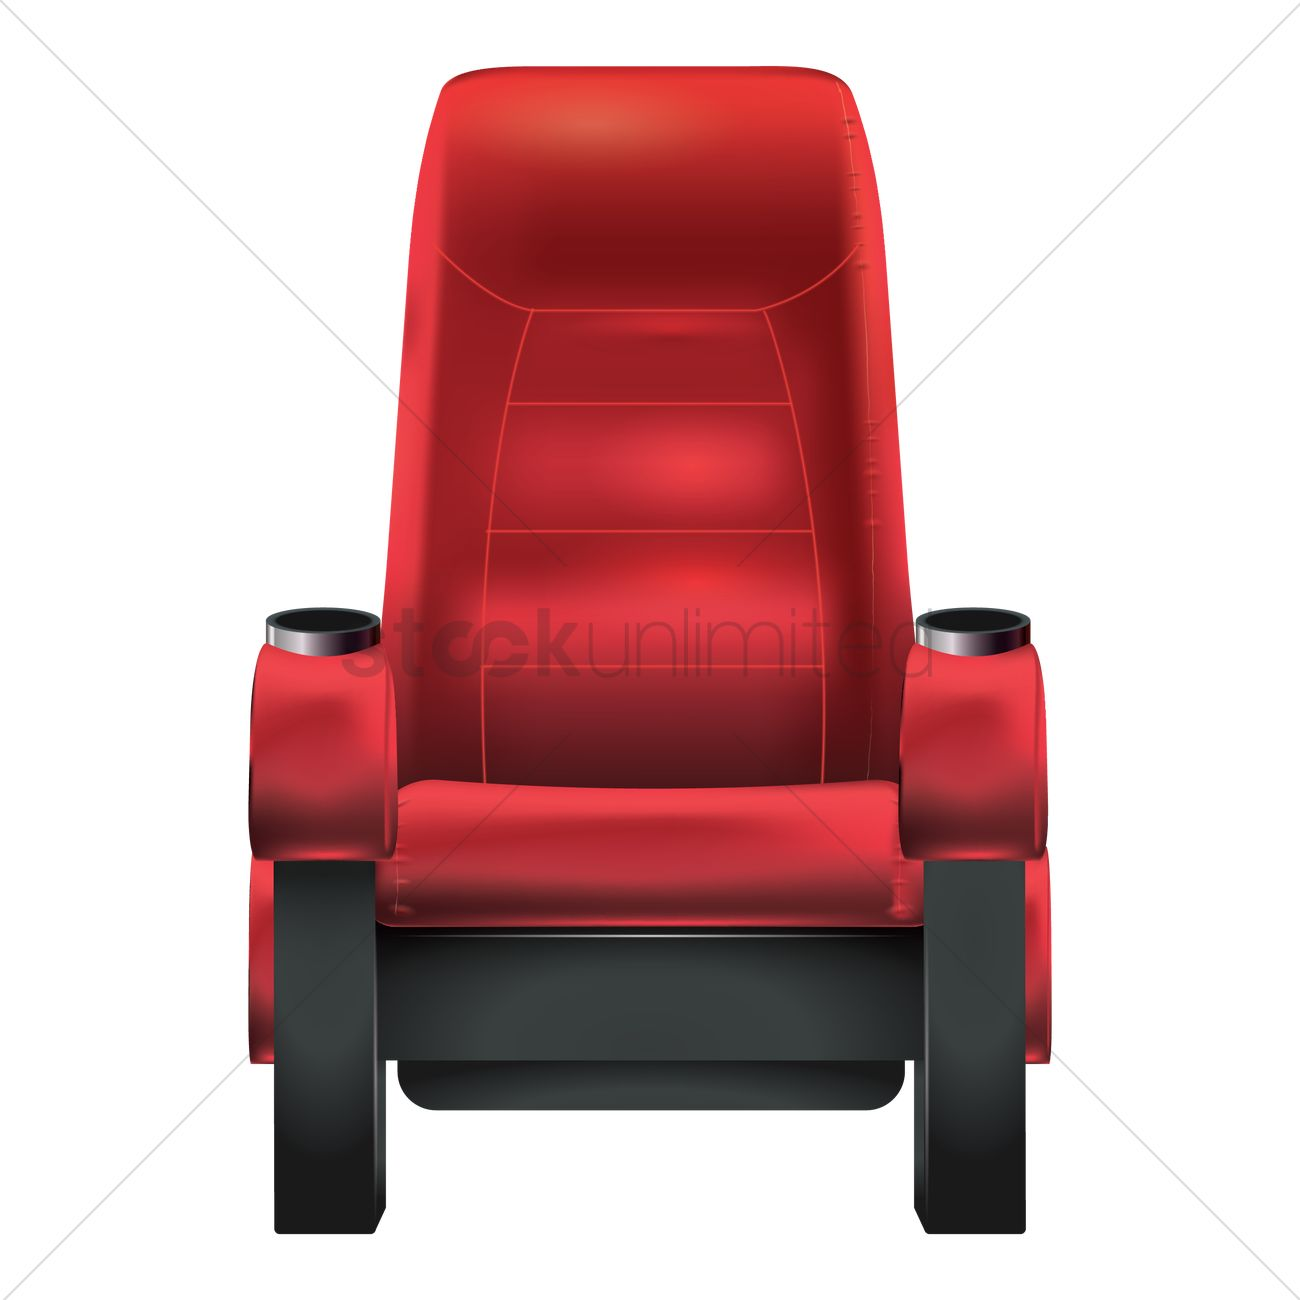 theater chair vector graphic  sc 1 st  StockUnlimited & Theater chair Vector Image - 1805947 | StockUnlimited